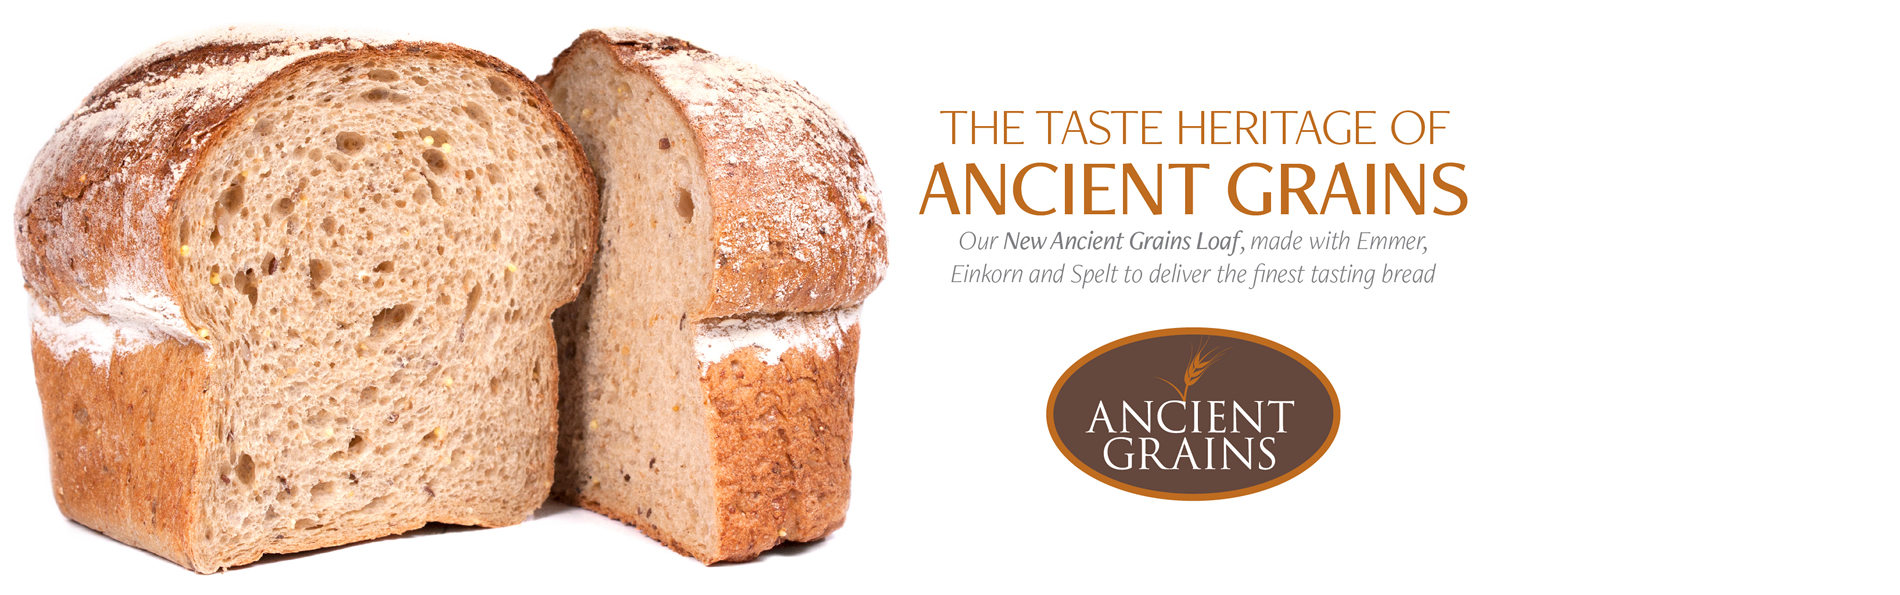 The taste heritage of ancient grains. Our new ancient grains load, made with Emmer, Einkorn and Spelt to deliver the finest tasting bread